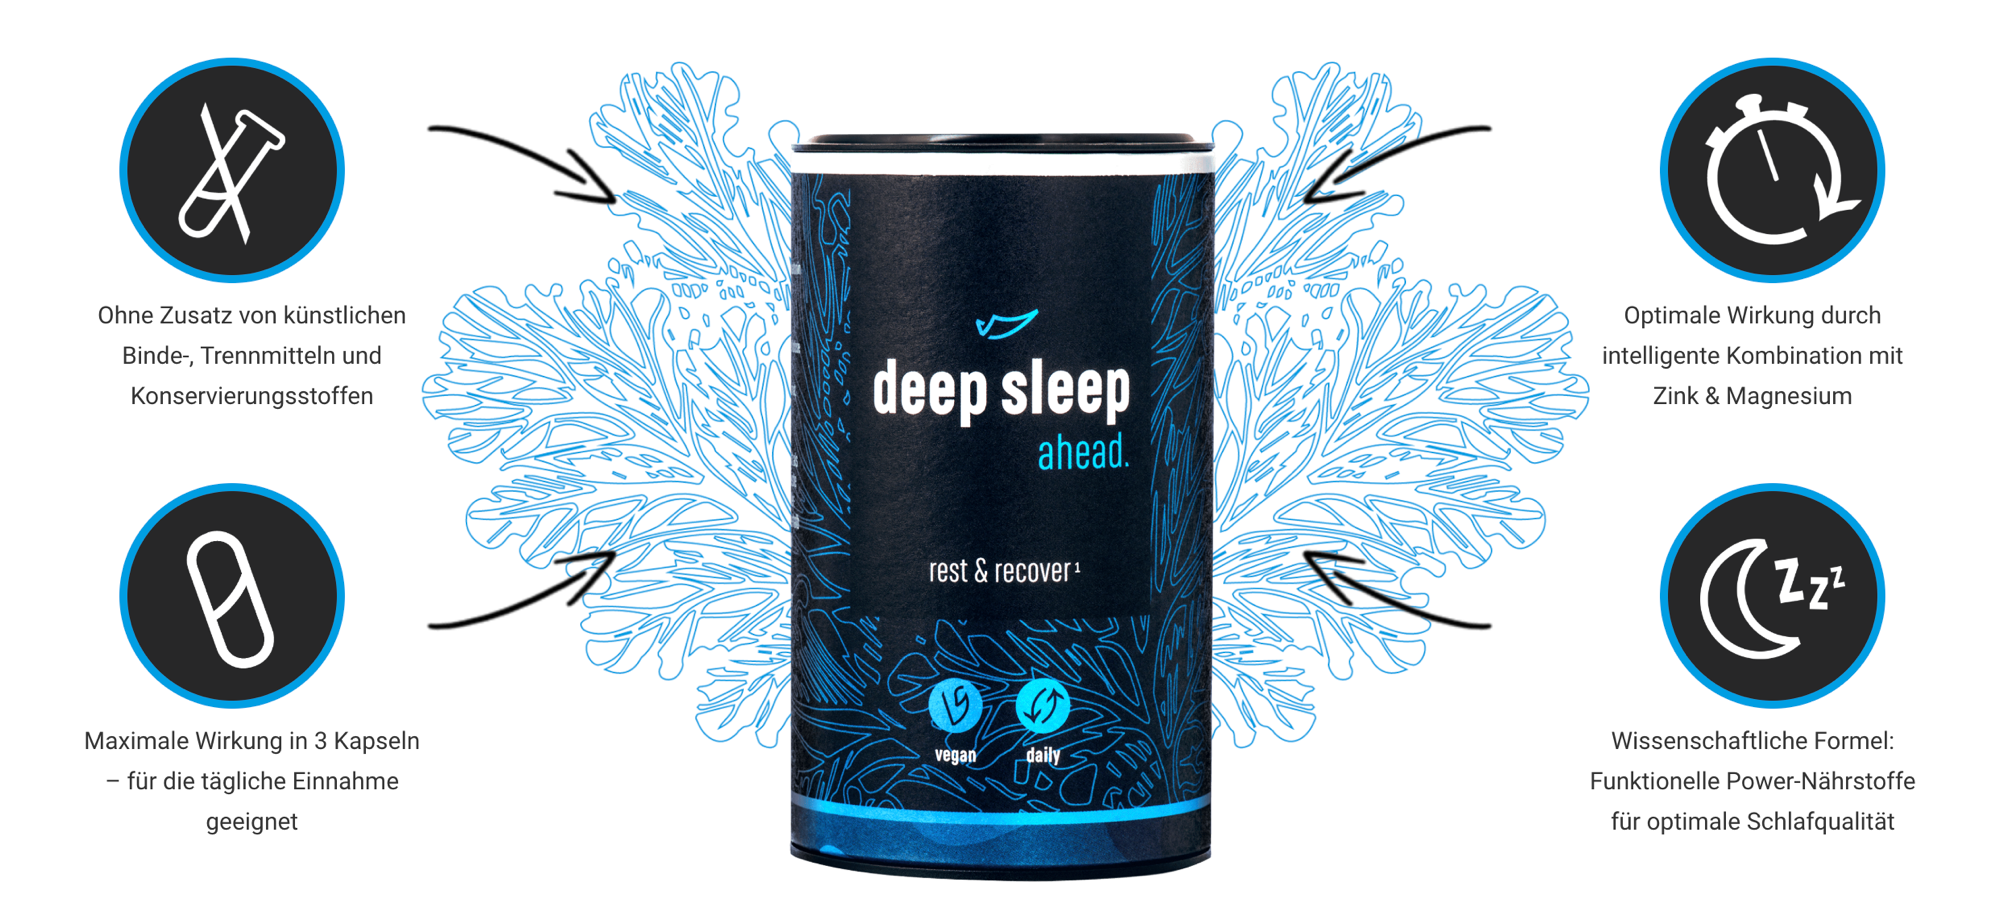 deep-sleep-1-compressor-1CxIjiaggINaQB